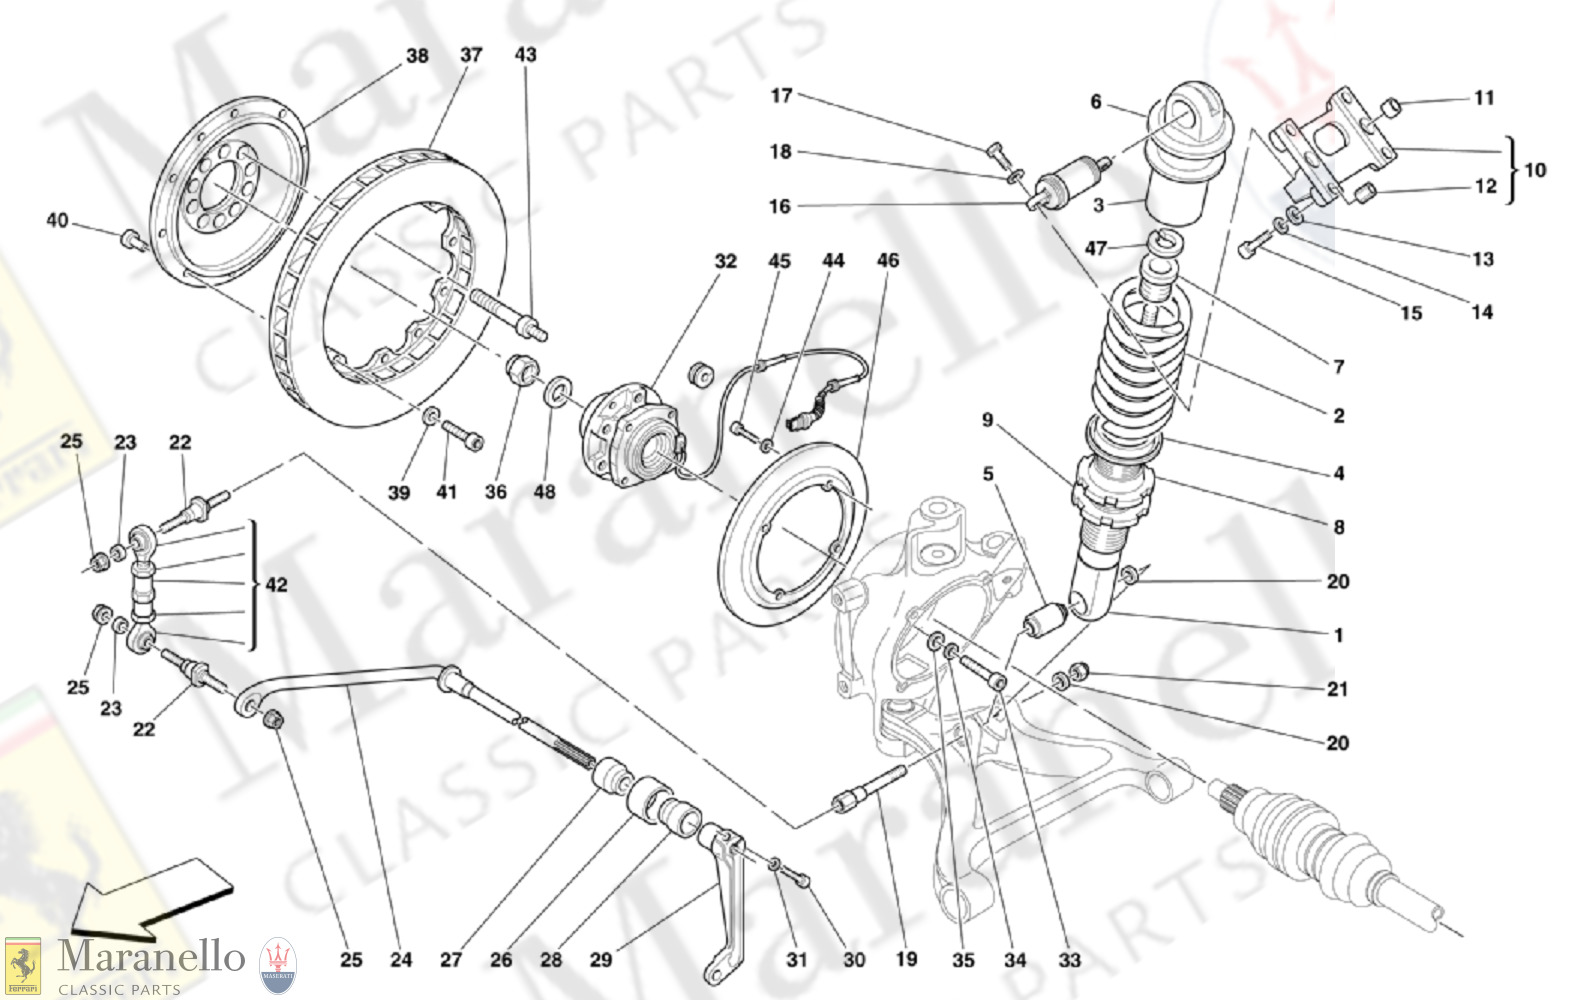 040 - Rear Suspension - Shock Absorber And Brake Disc